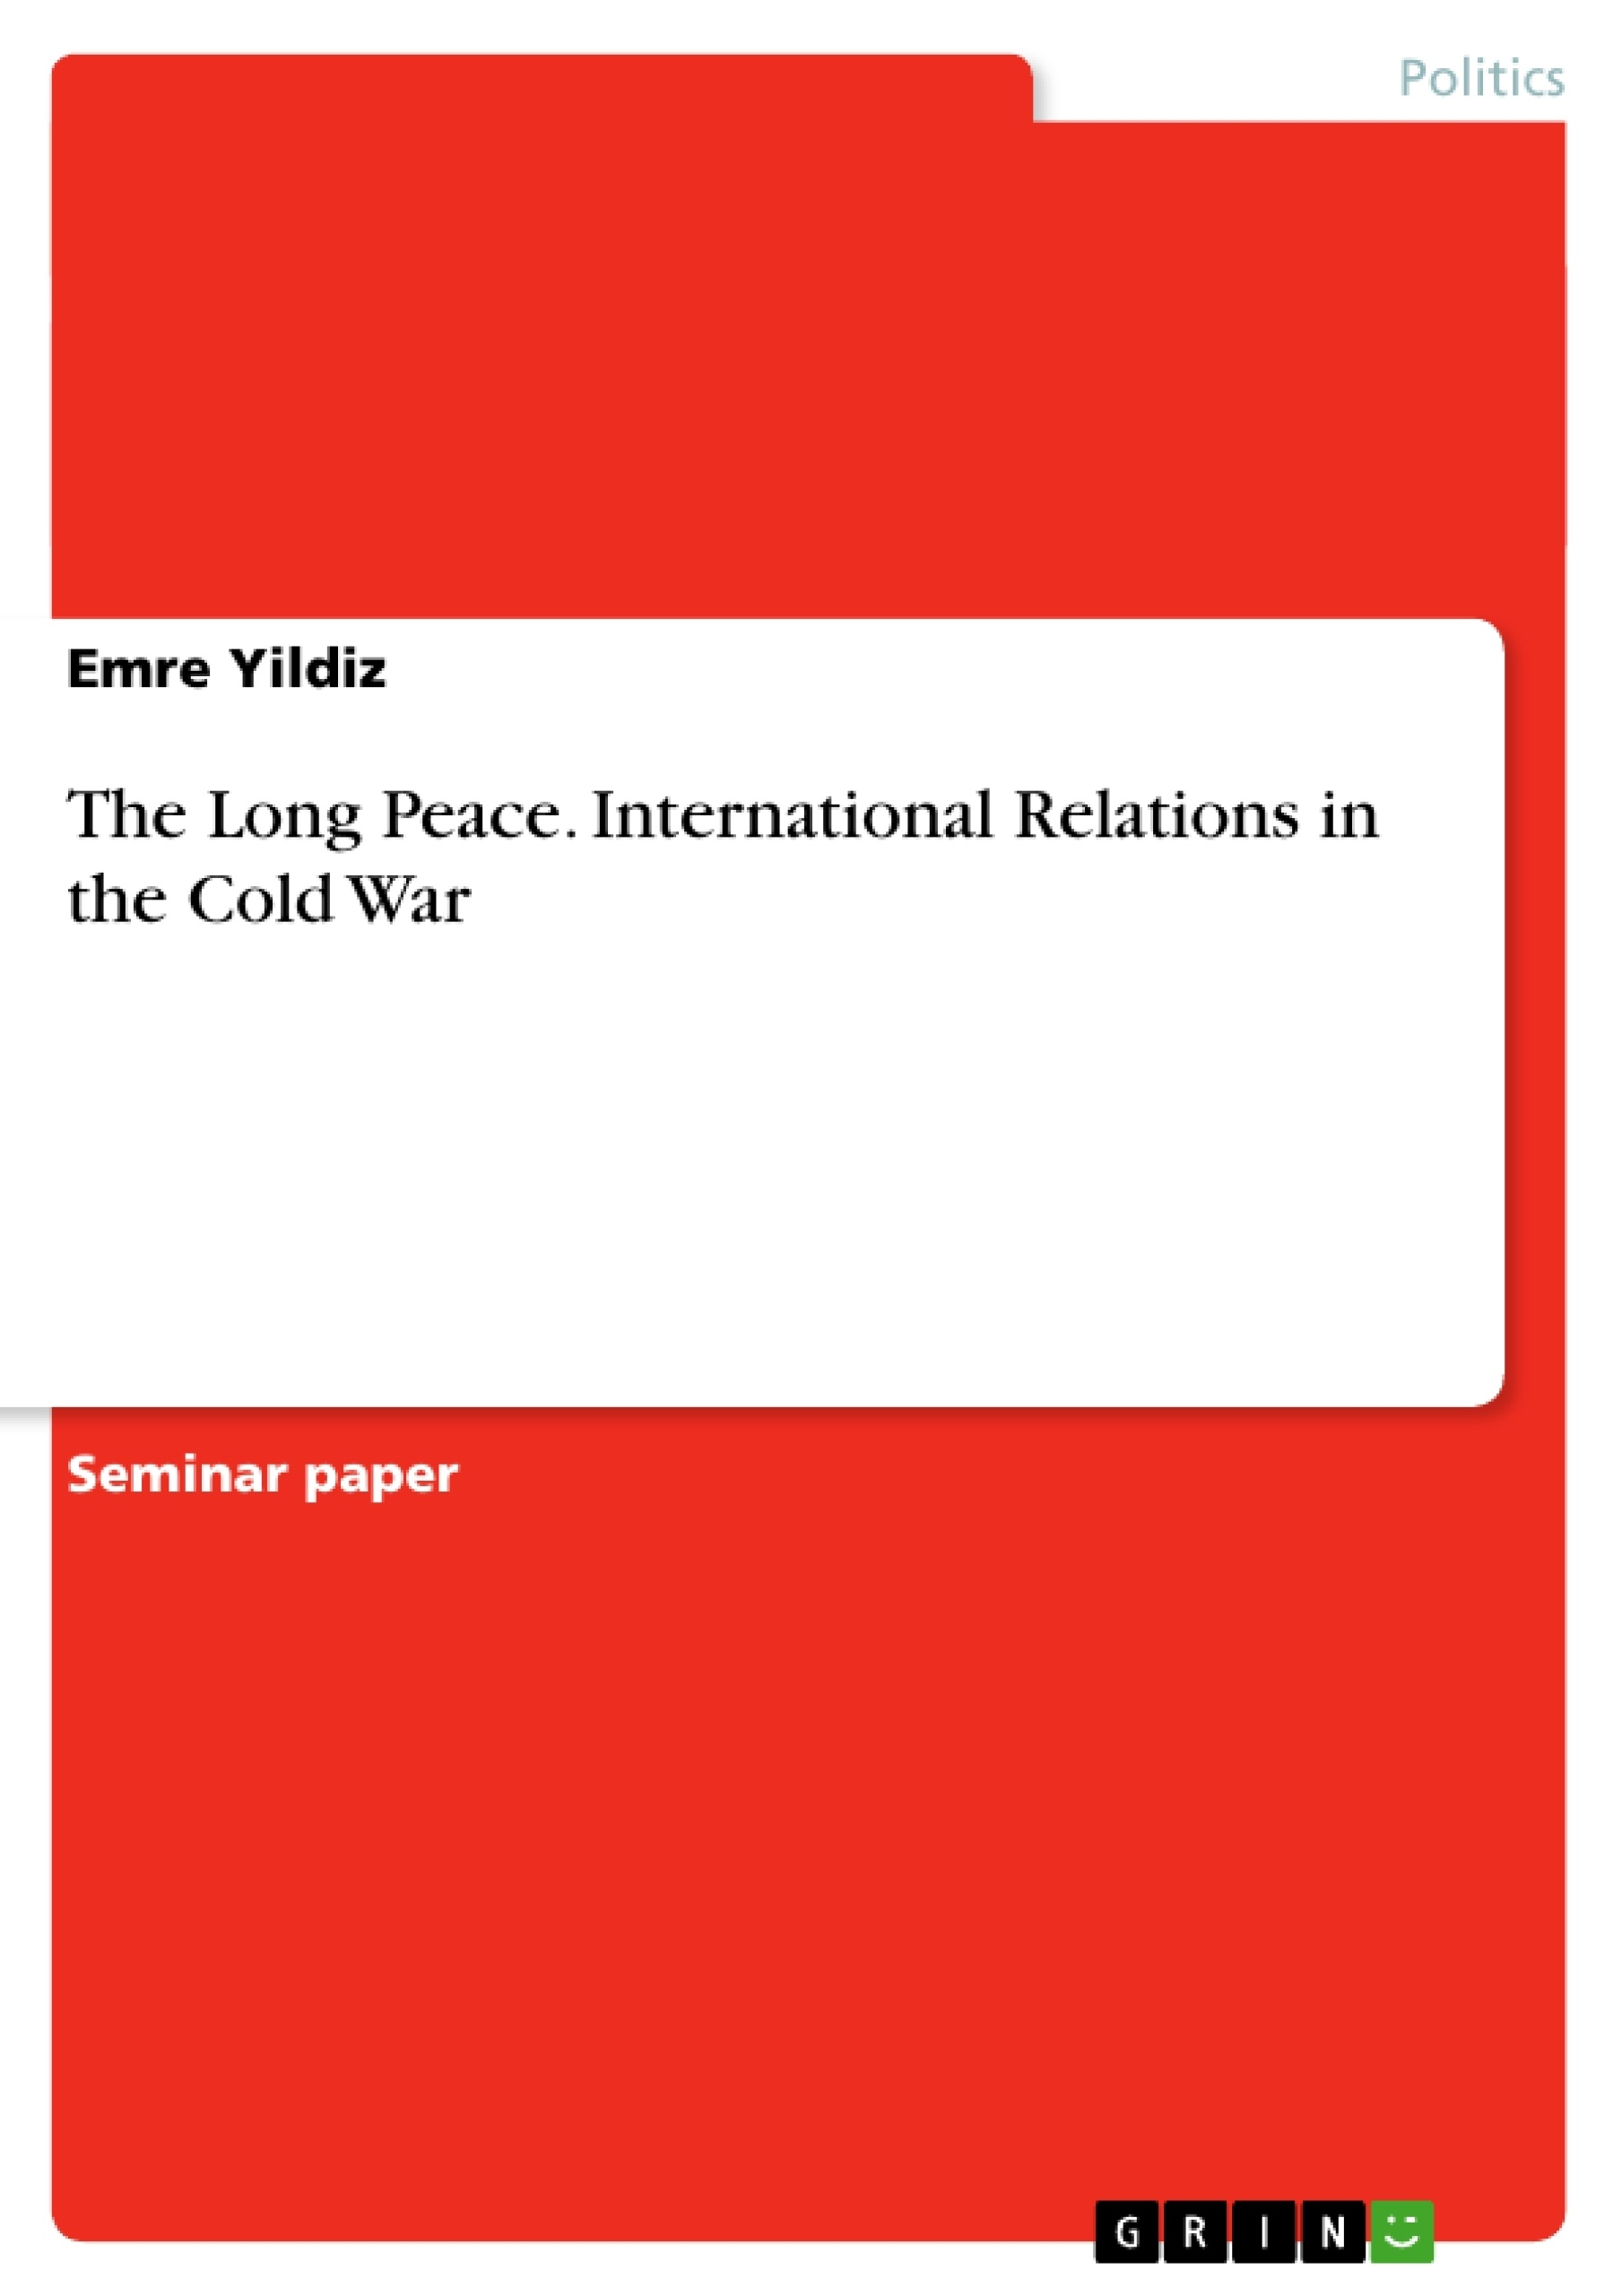 the long peace international relations in the cold war publish upload your own papers earn money and win an iphone 7